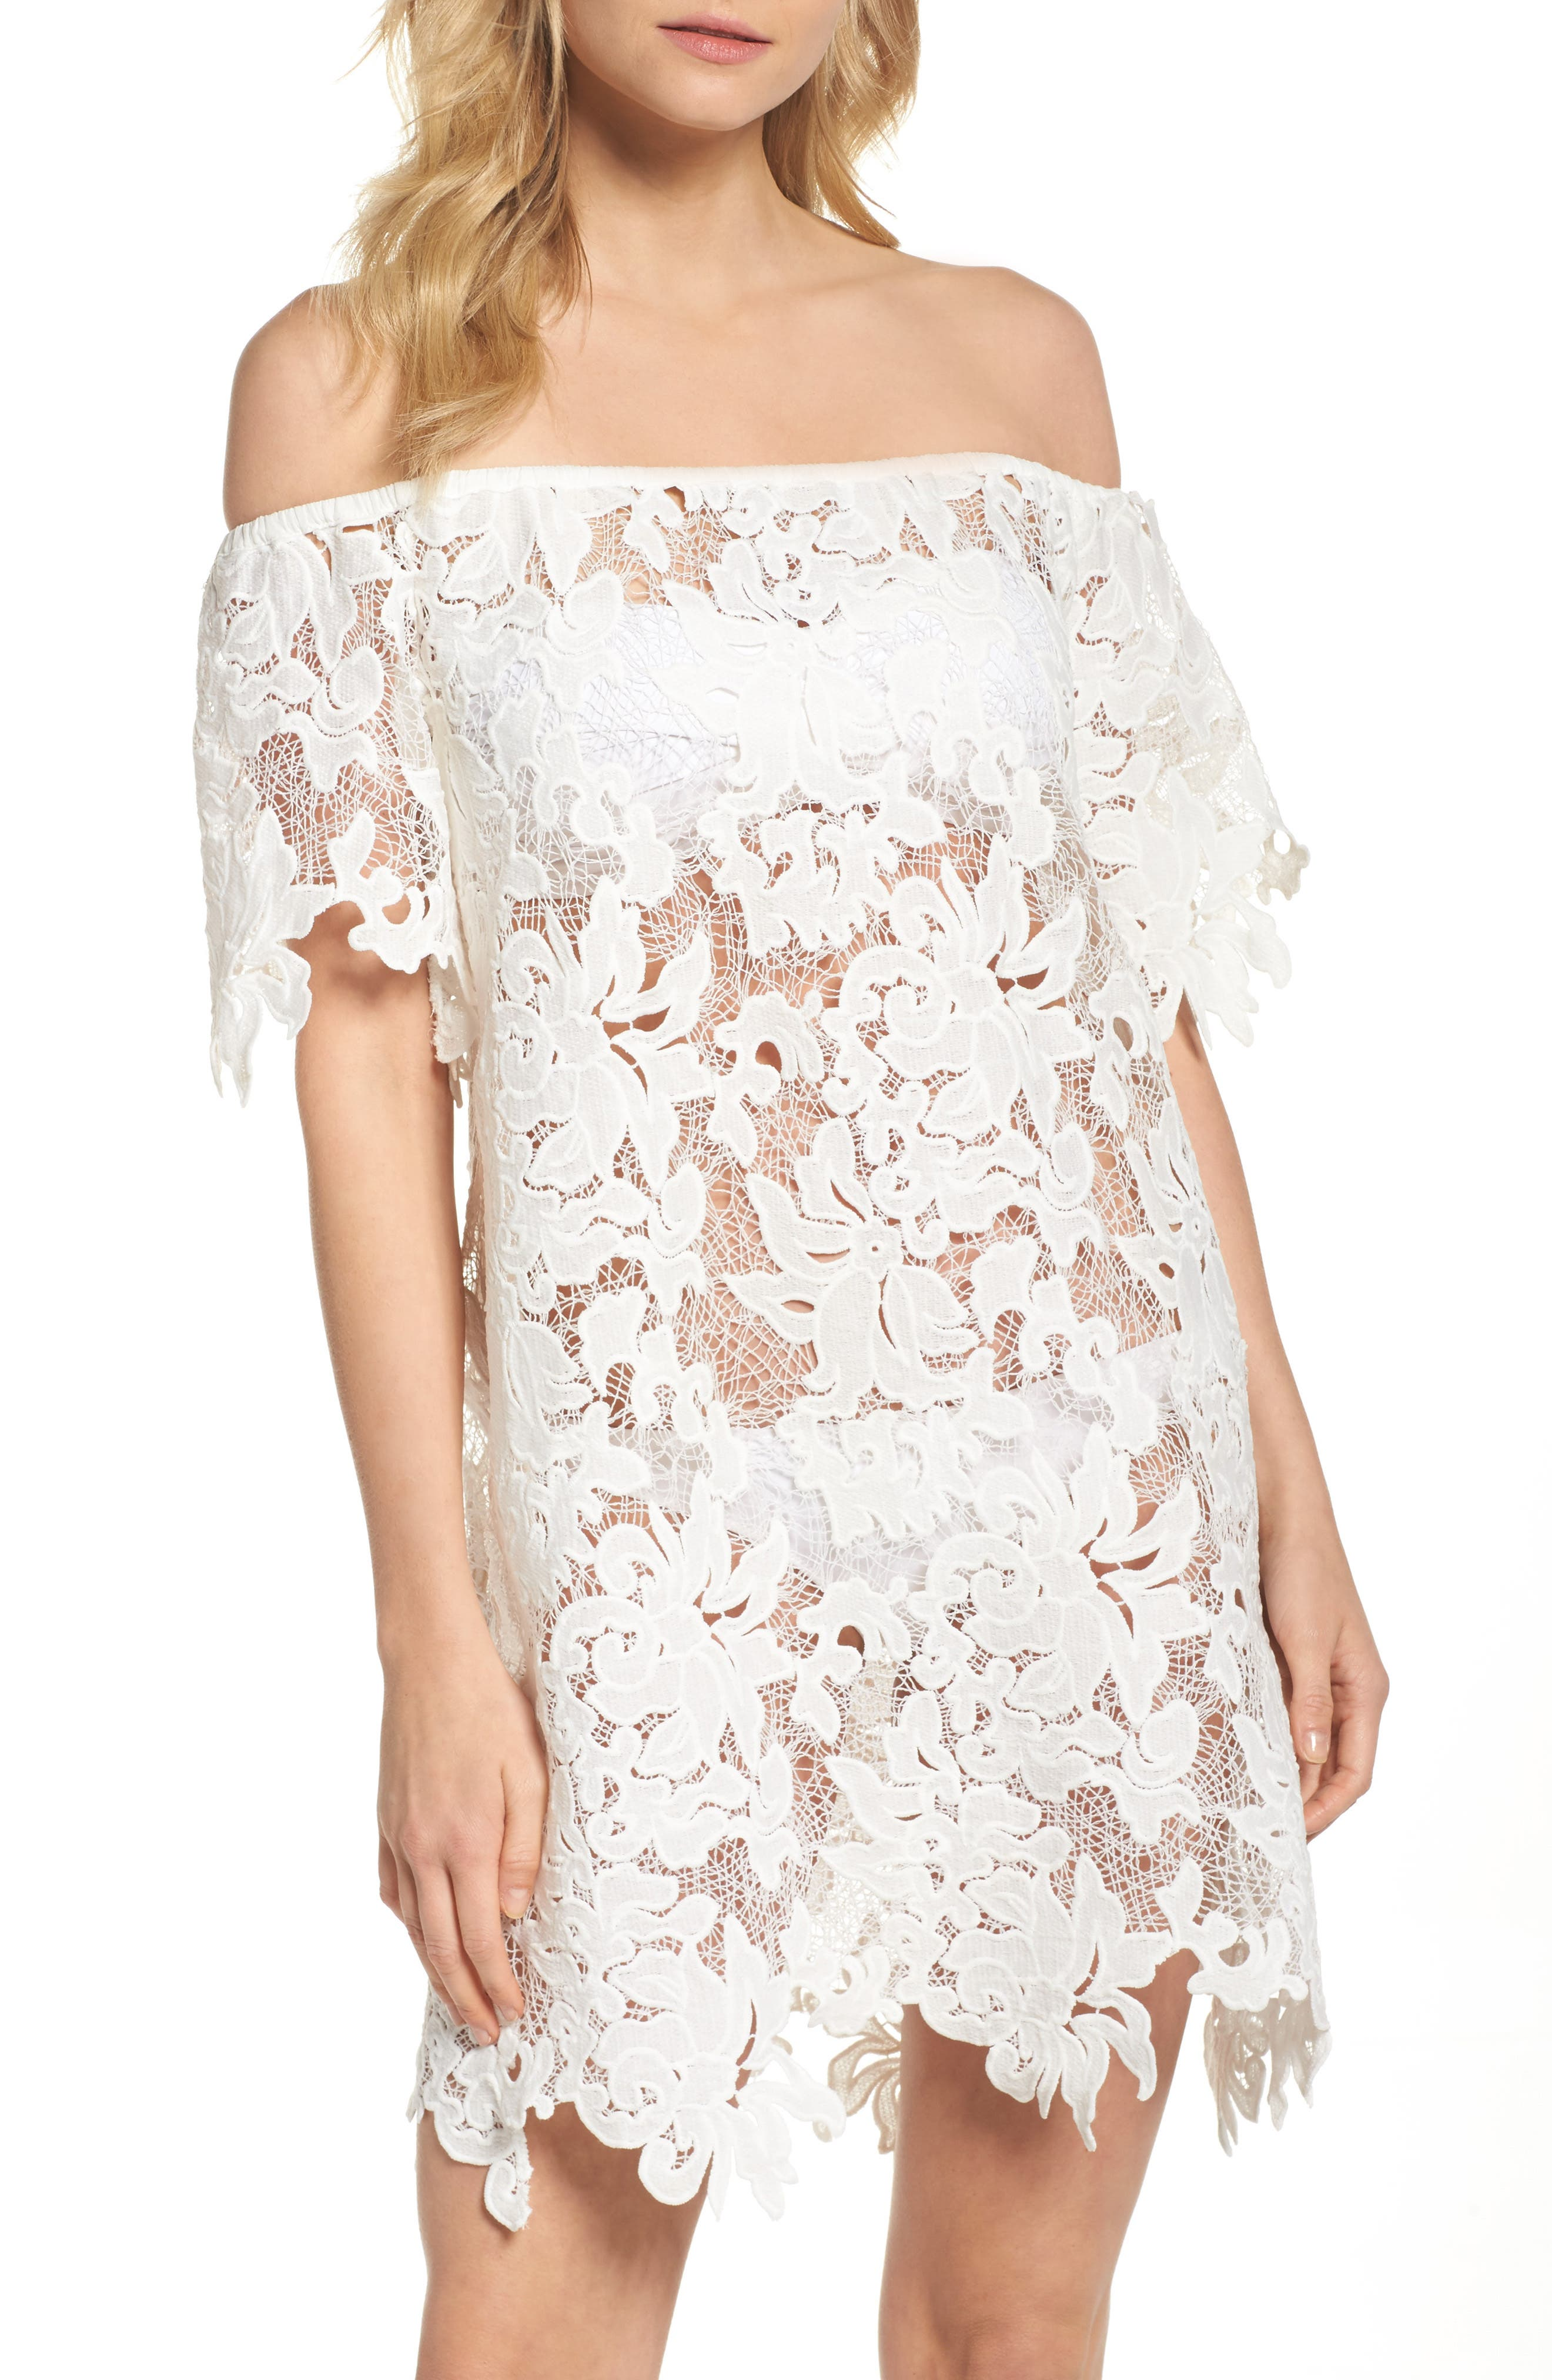 Ode Rosette Lace Cover-Up Dress,                             Main thumbnail 1, color,                             White